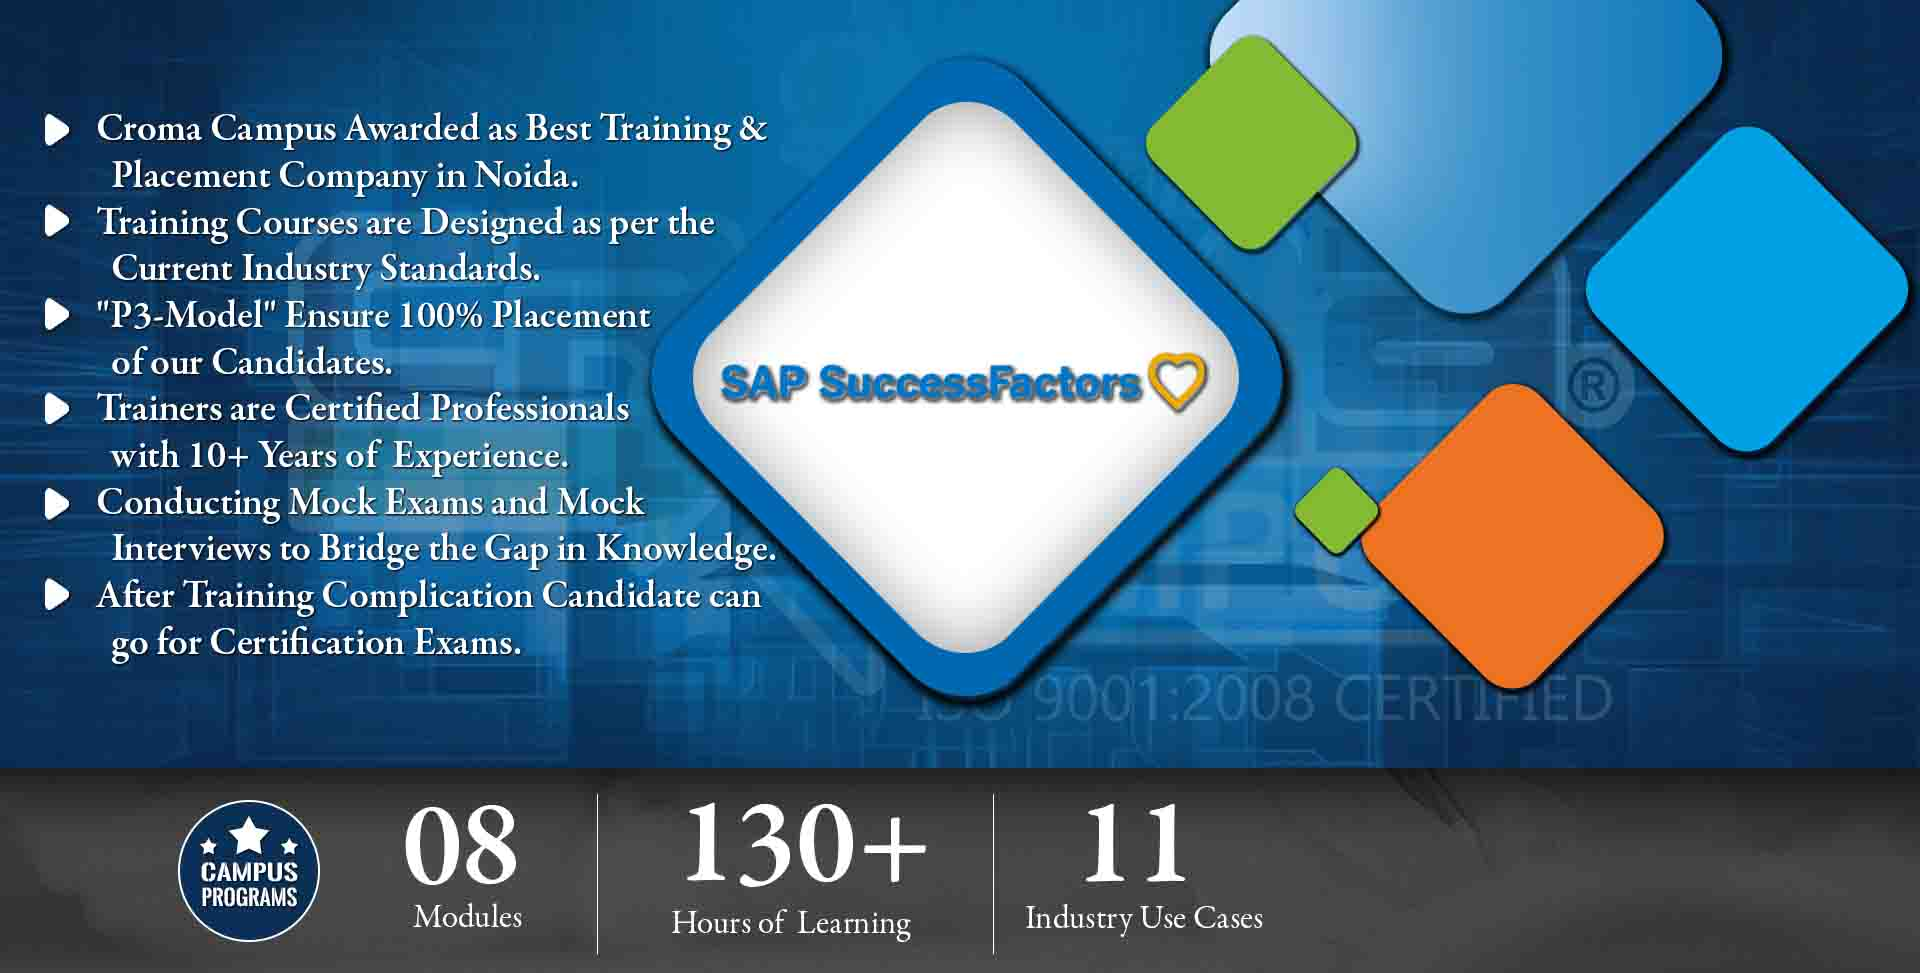 SAP SuccessFactors Training in Noida- Croma Campus